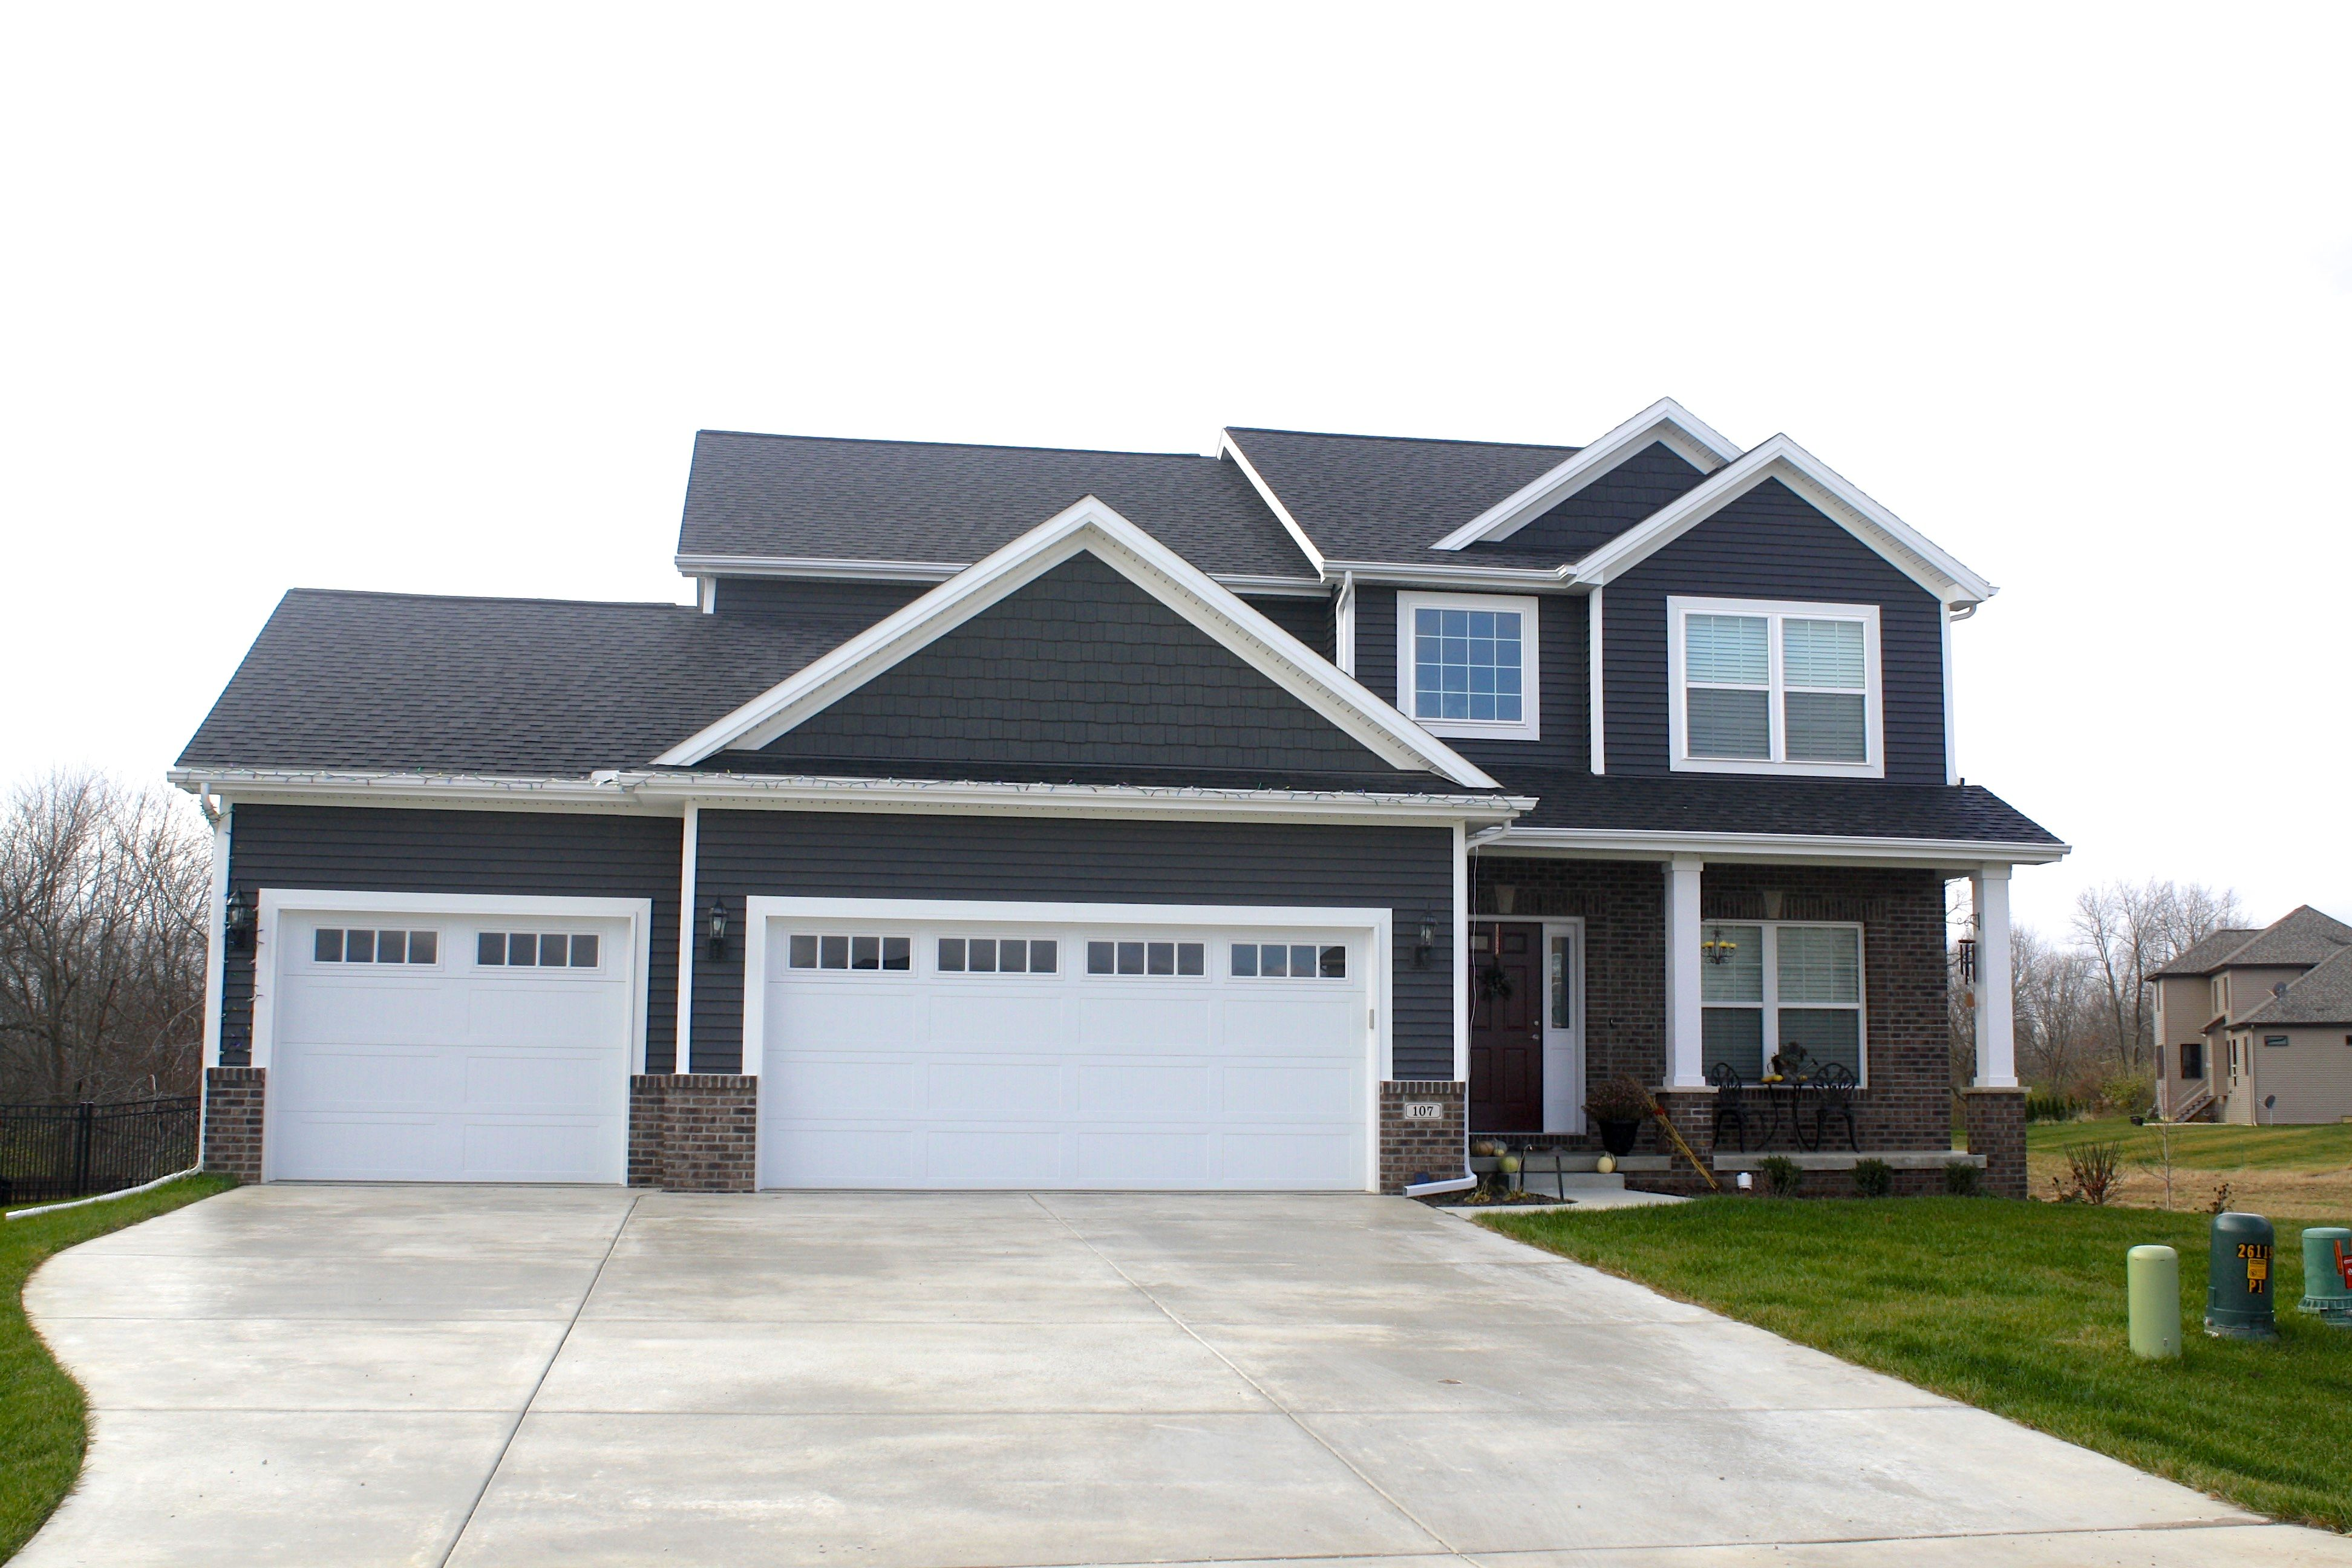 White Trim Royal Ironstone Dark Grey Siding And Shakes White Carriage Style Garage Doors Certainteed Moire Black Roof In Downs Il In 2020 Carriage Style Garage Doors Gray House Exterior House Paint Exterior